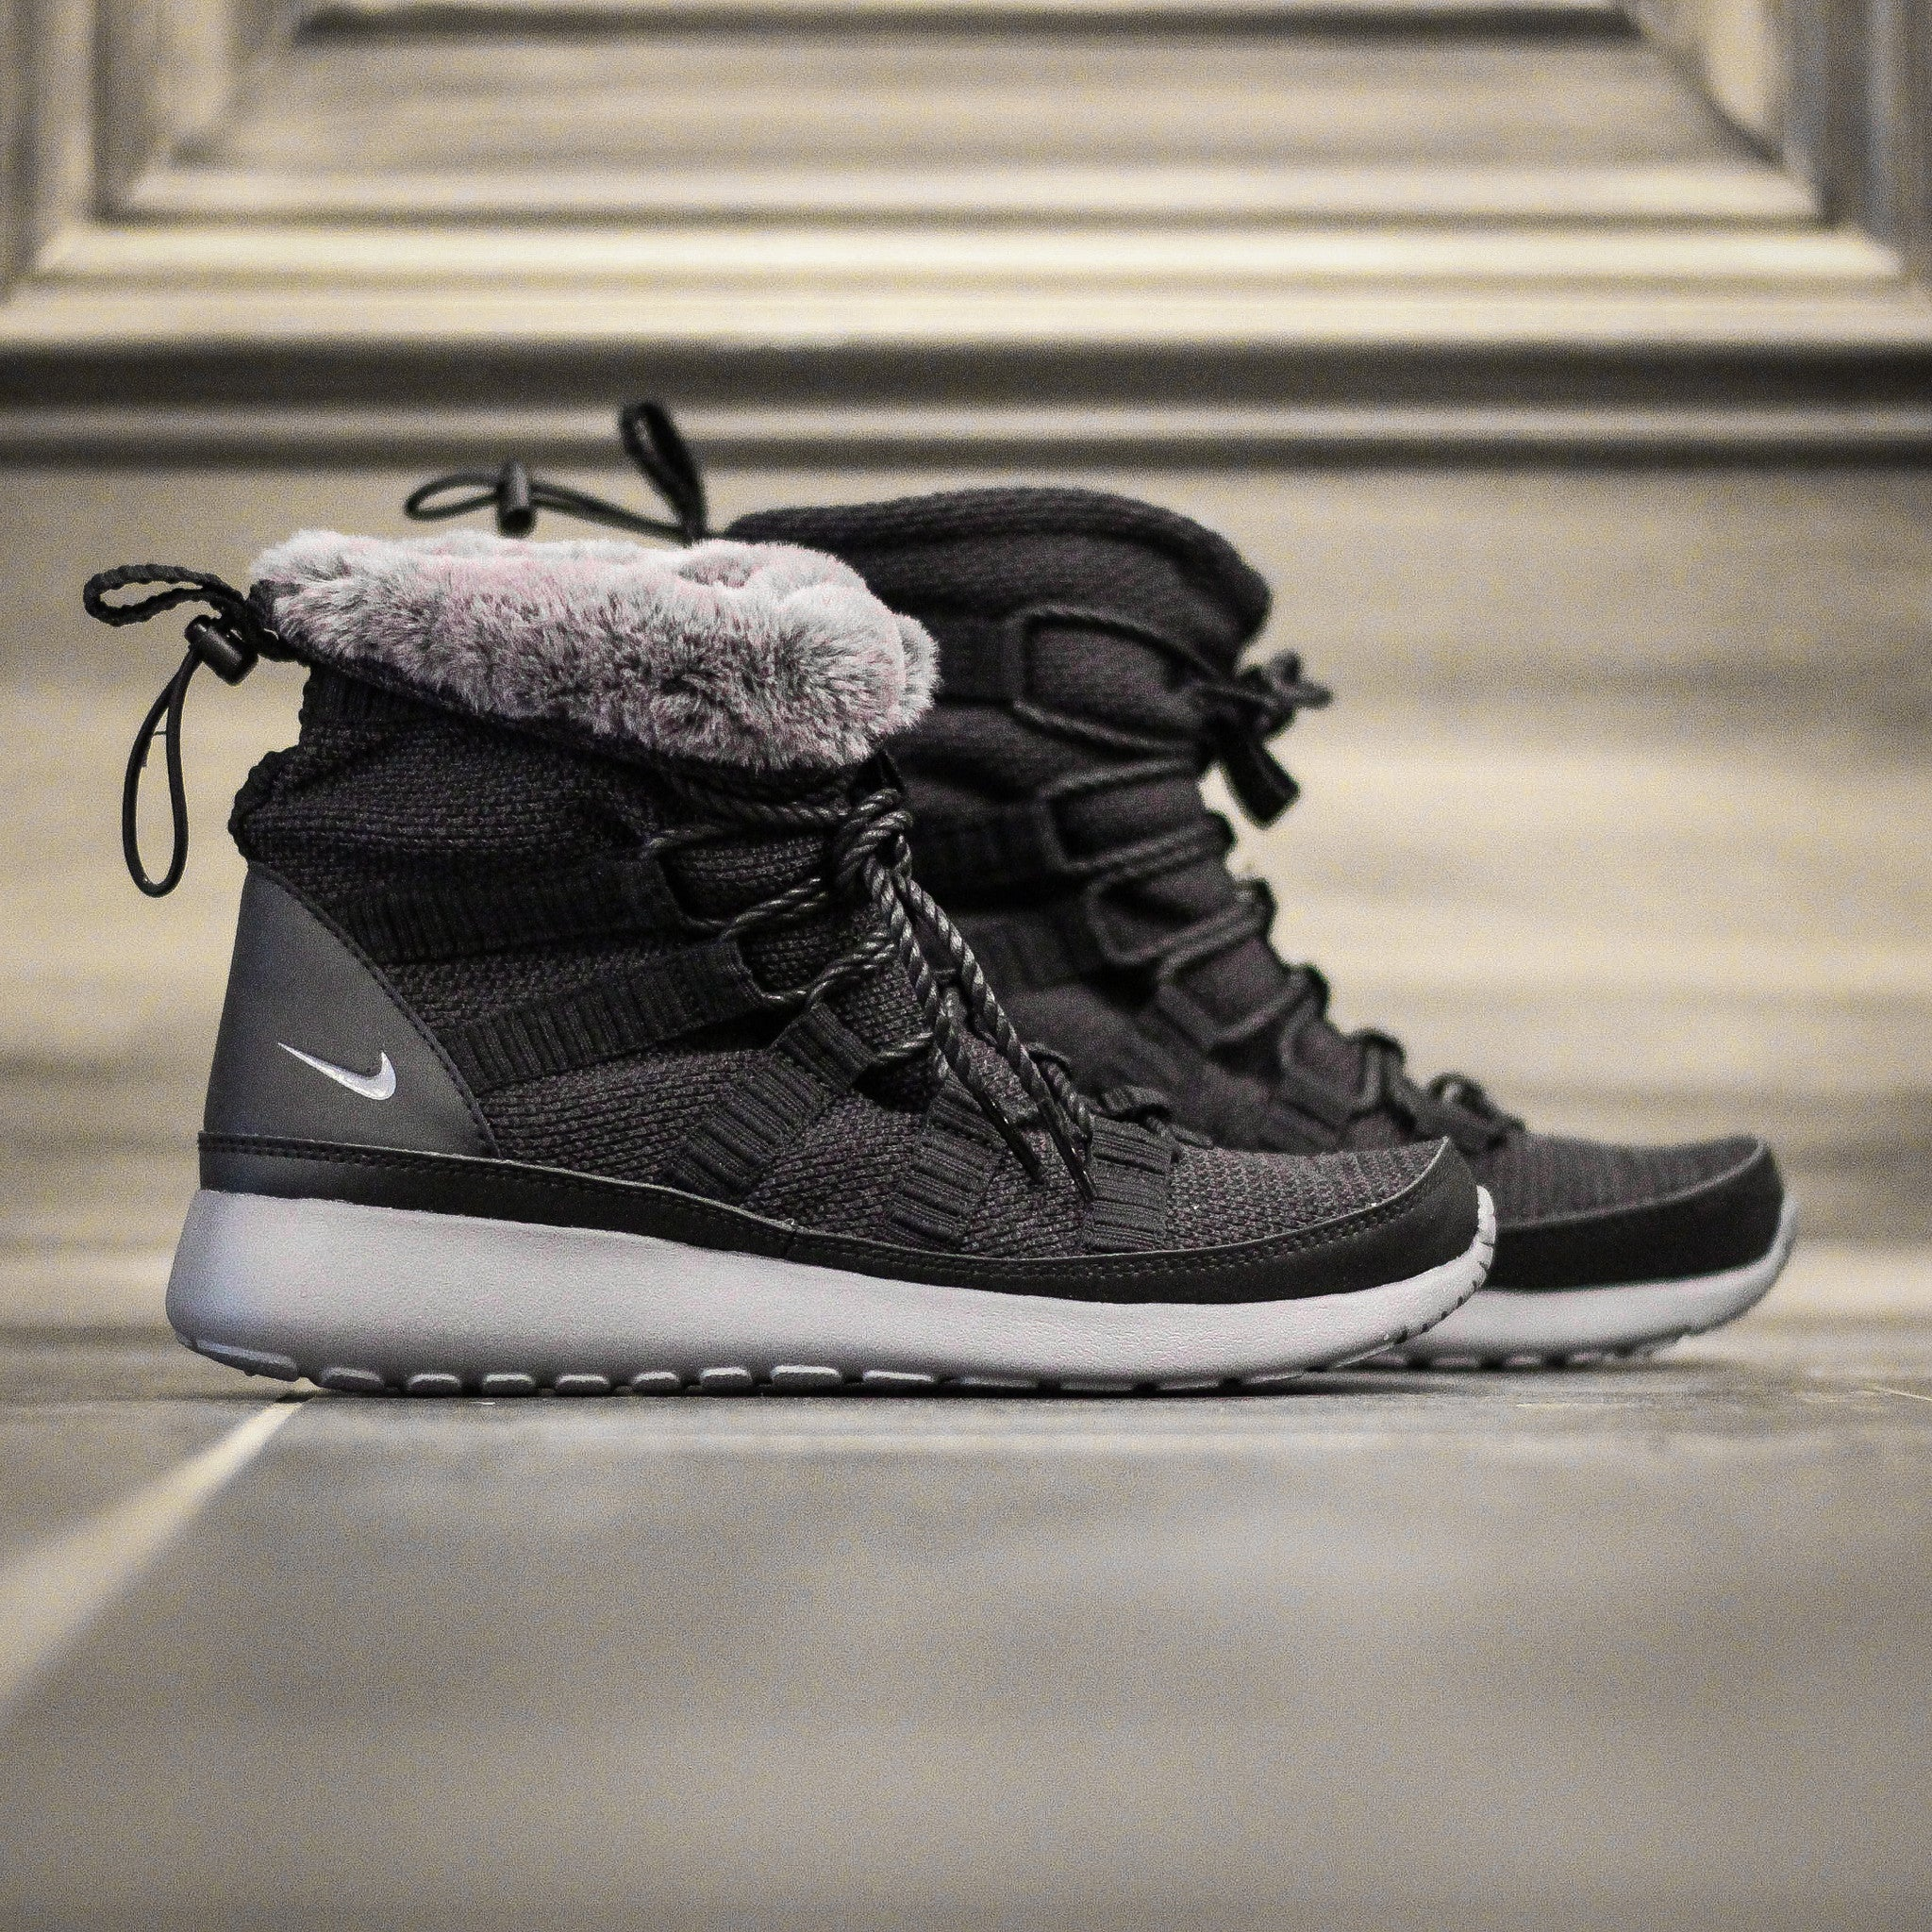 9890d77d9ae6 nike roshe one hi flash winter 36 38.5 new99 lined winter boots sneakerboot  run whats it worth